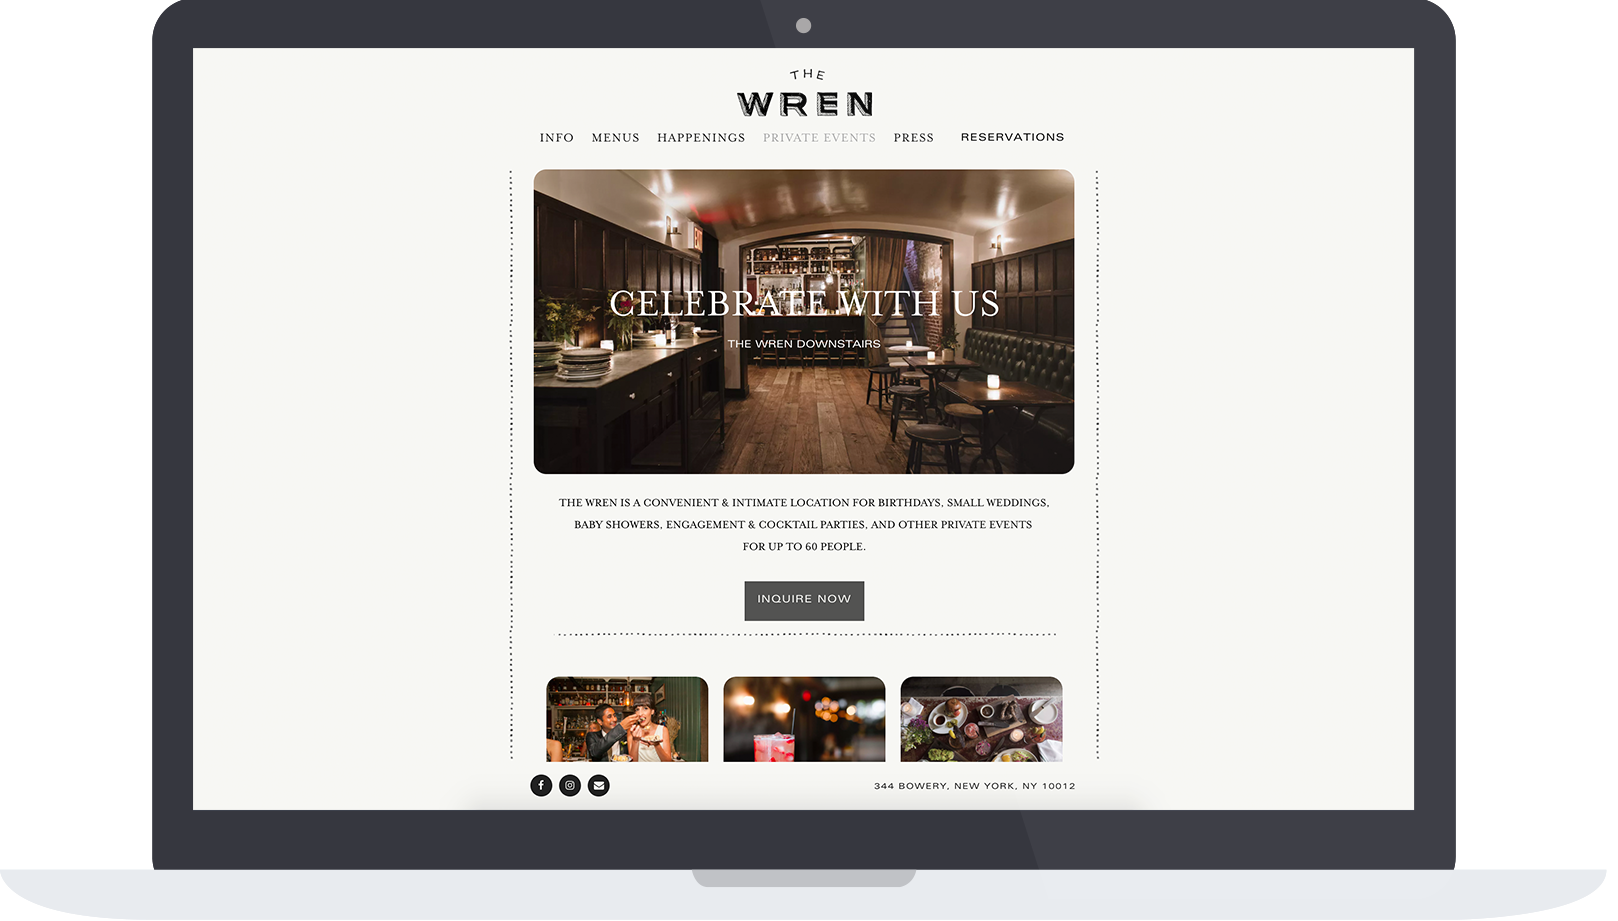 The Wren private events